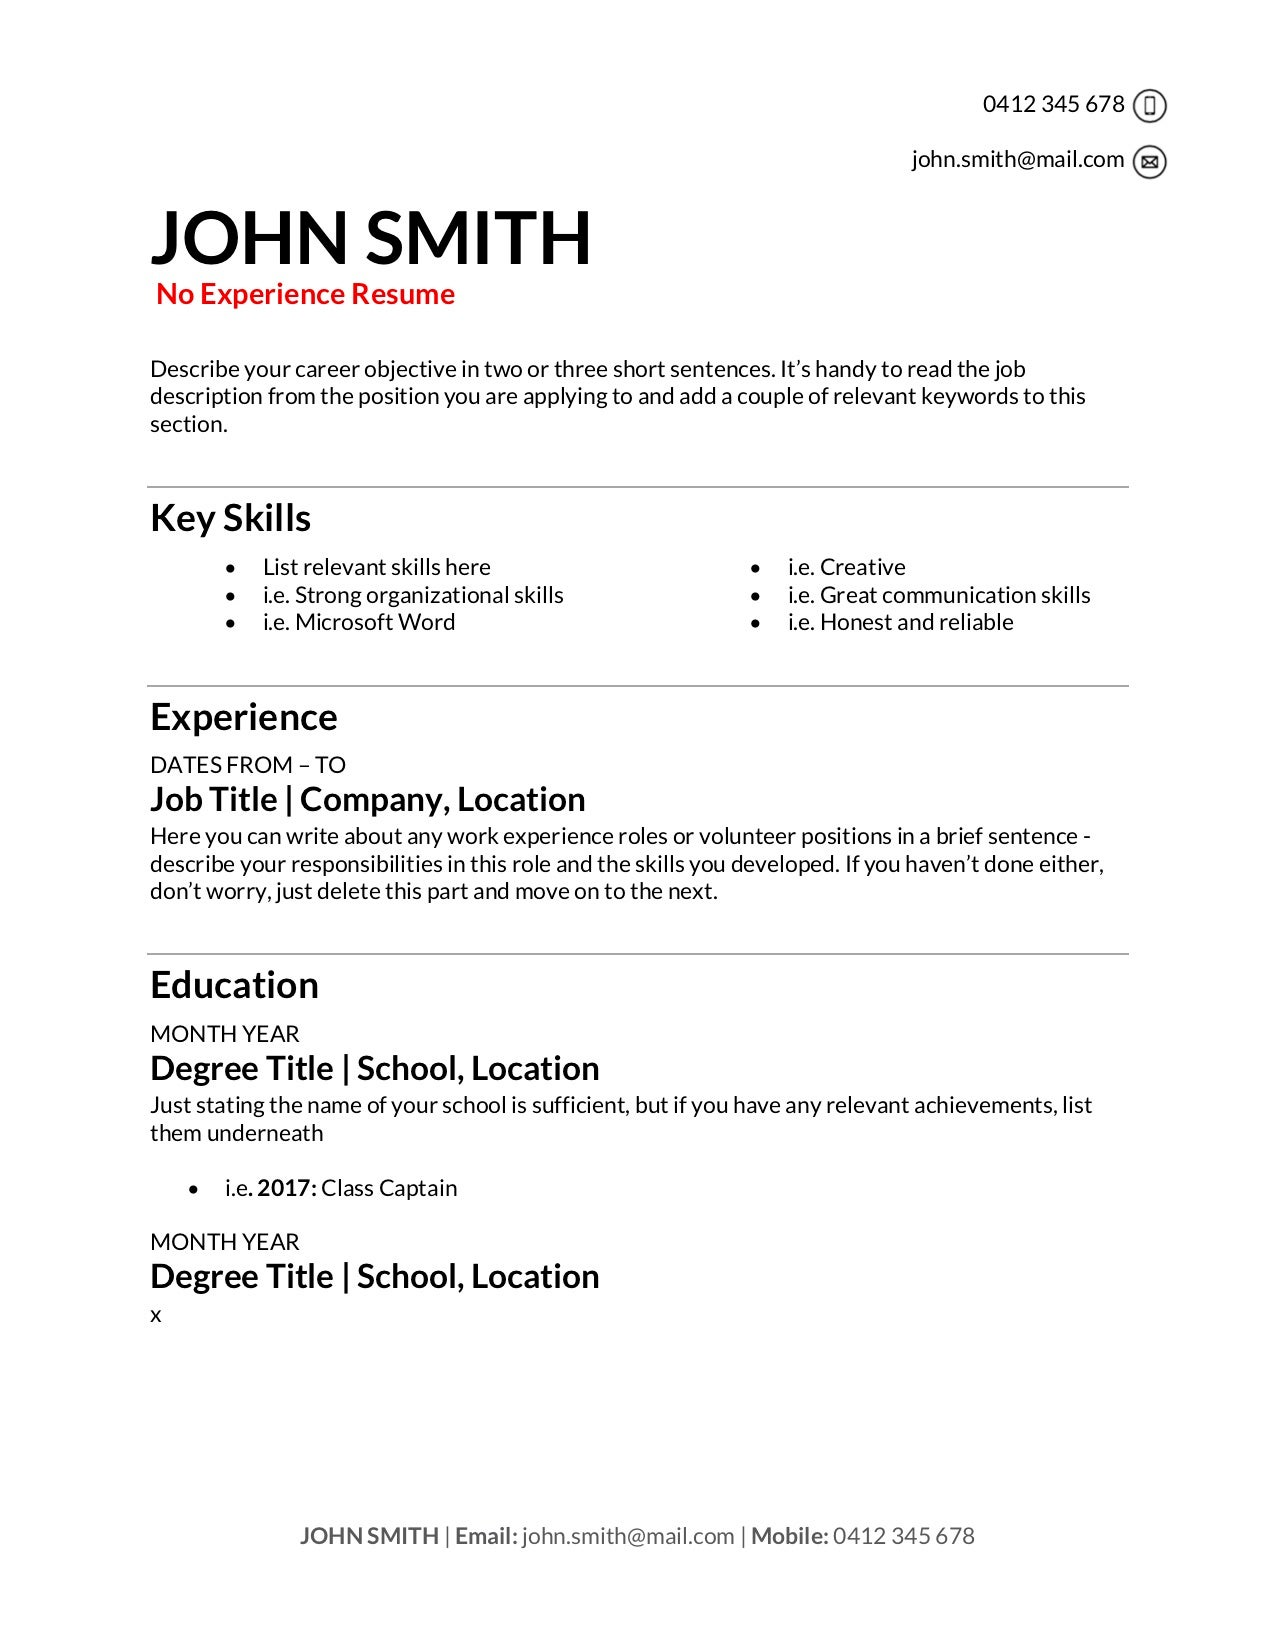 free resume templates to write in training au for job no experience excellent medical Resume Write A Resume For A Job